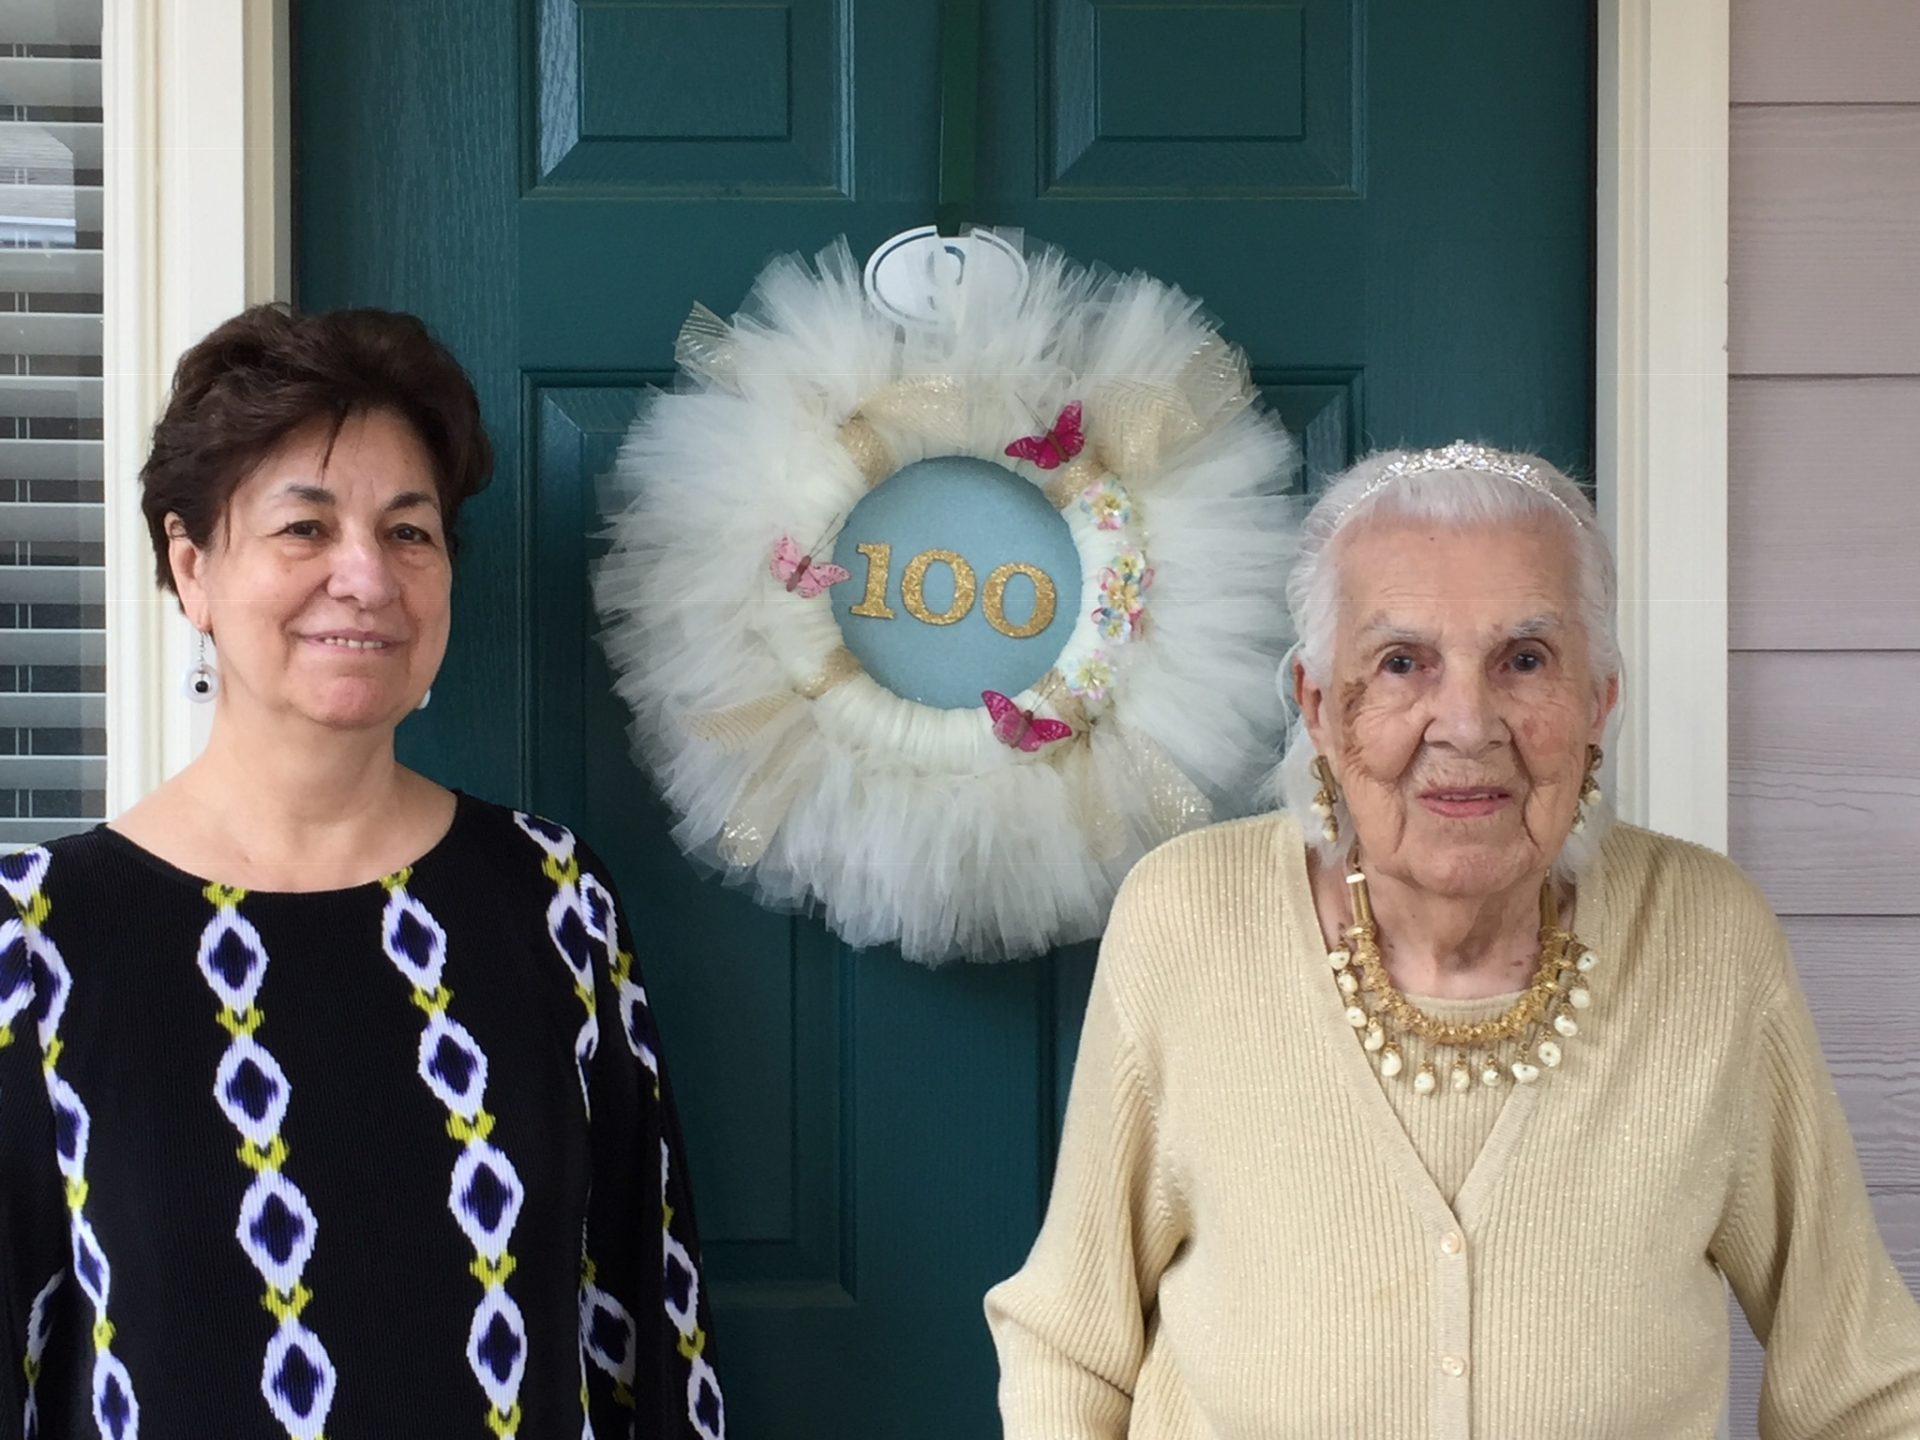 Marcia and Mom on her 100th Birthday